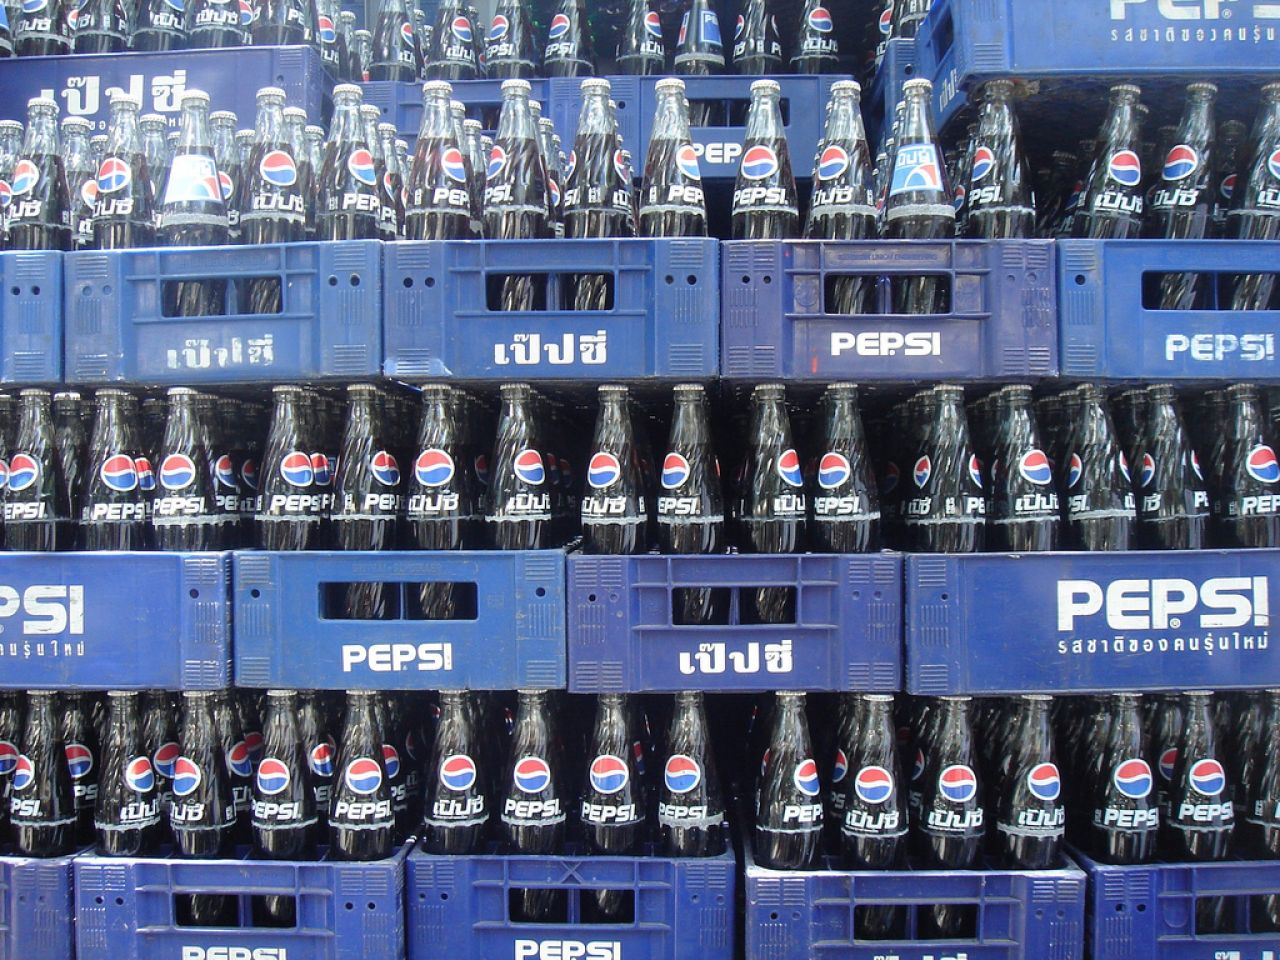 Pepsi Blue approved for China market debut | gbtimes com